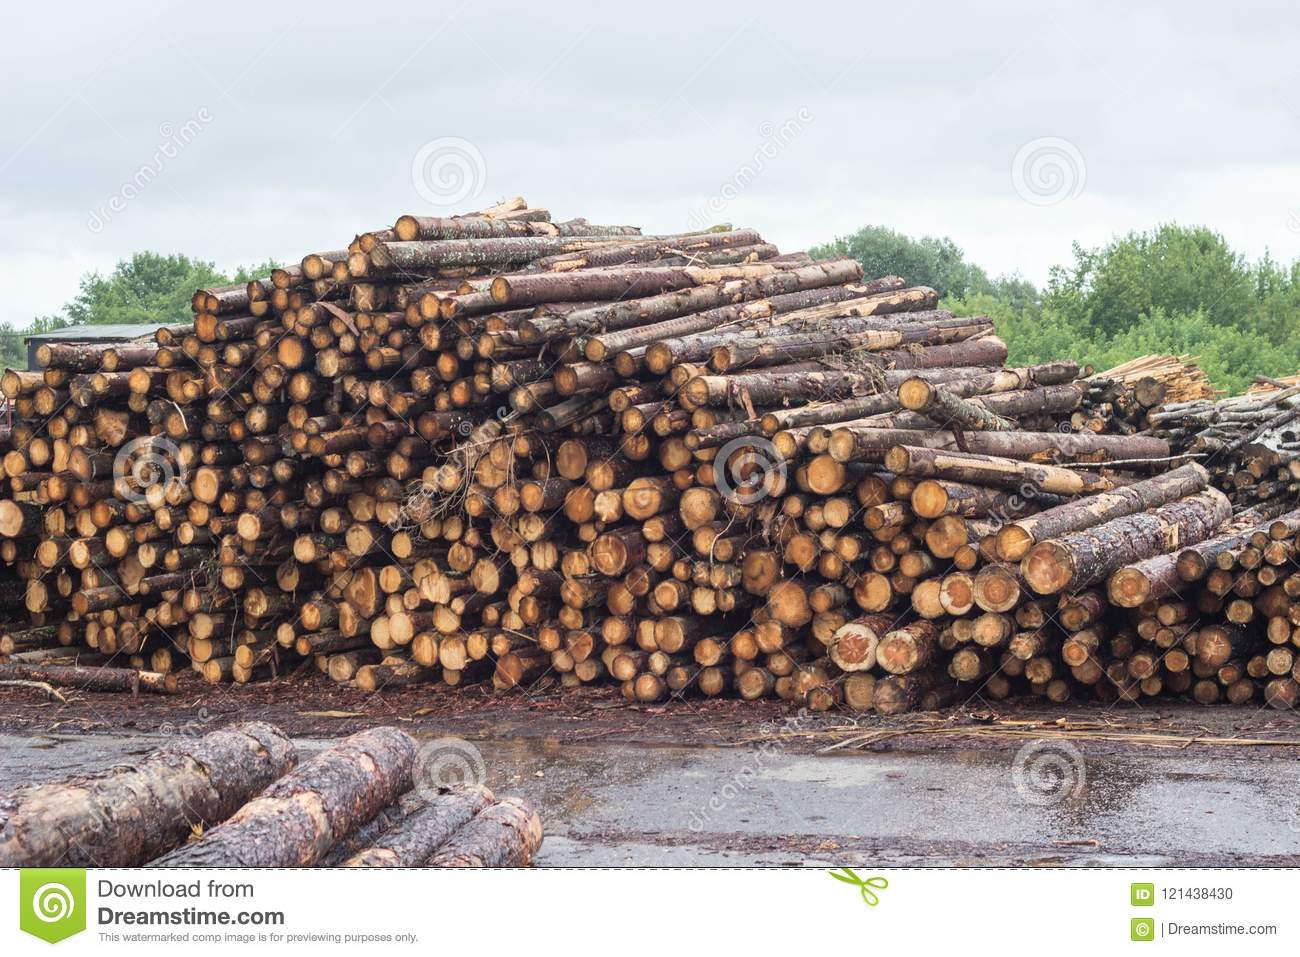 A huge pile of logs from the forest, a sawmill, timber for export, log